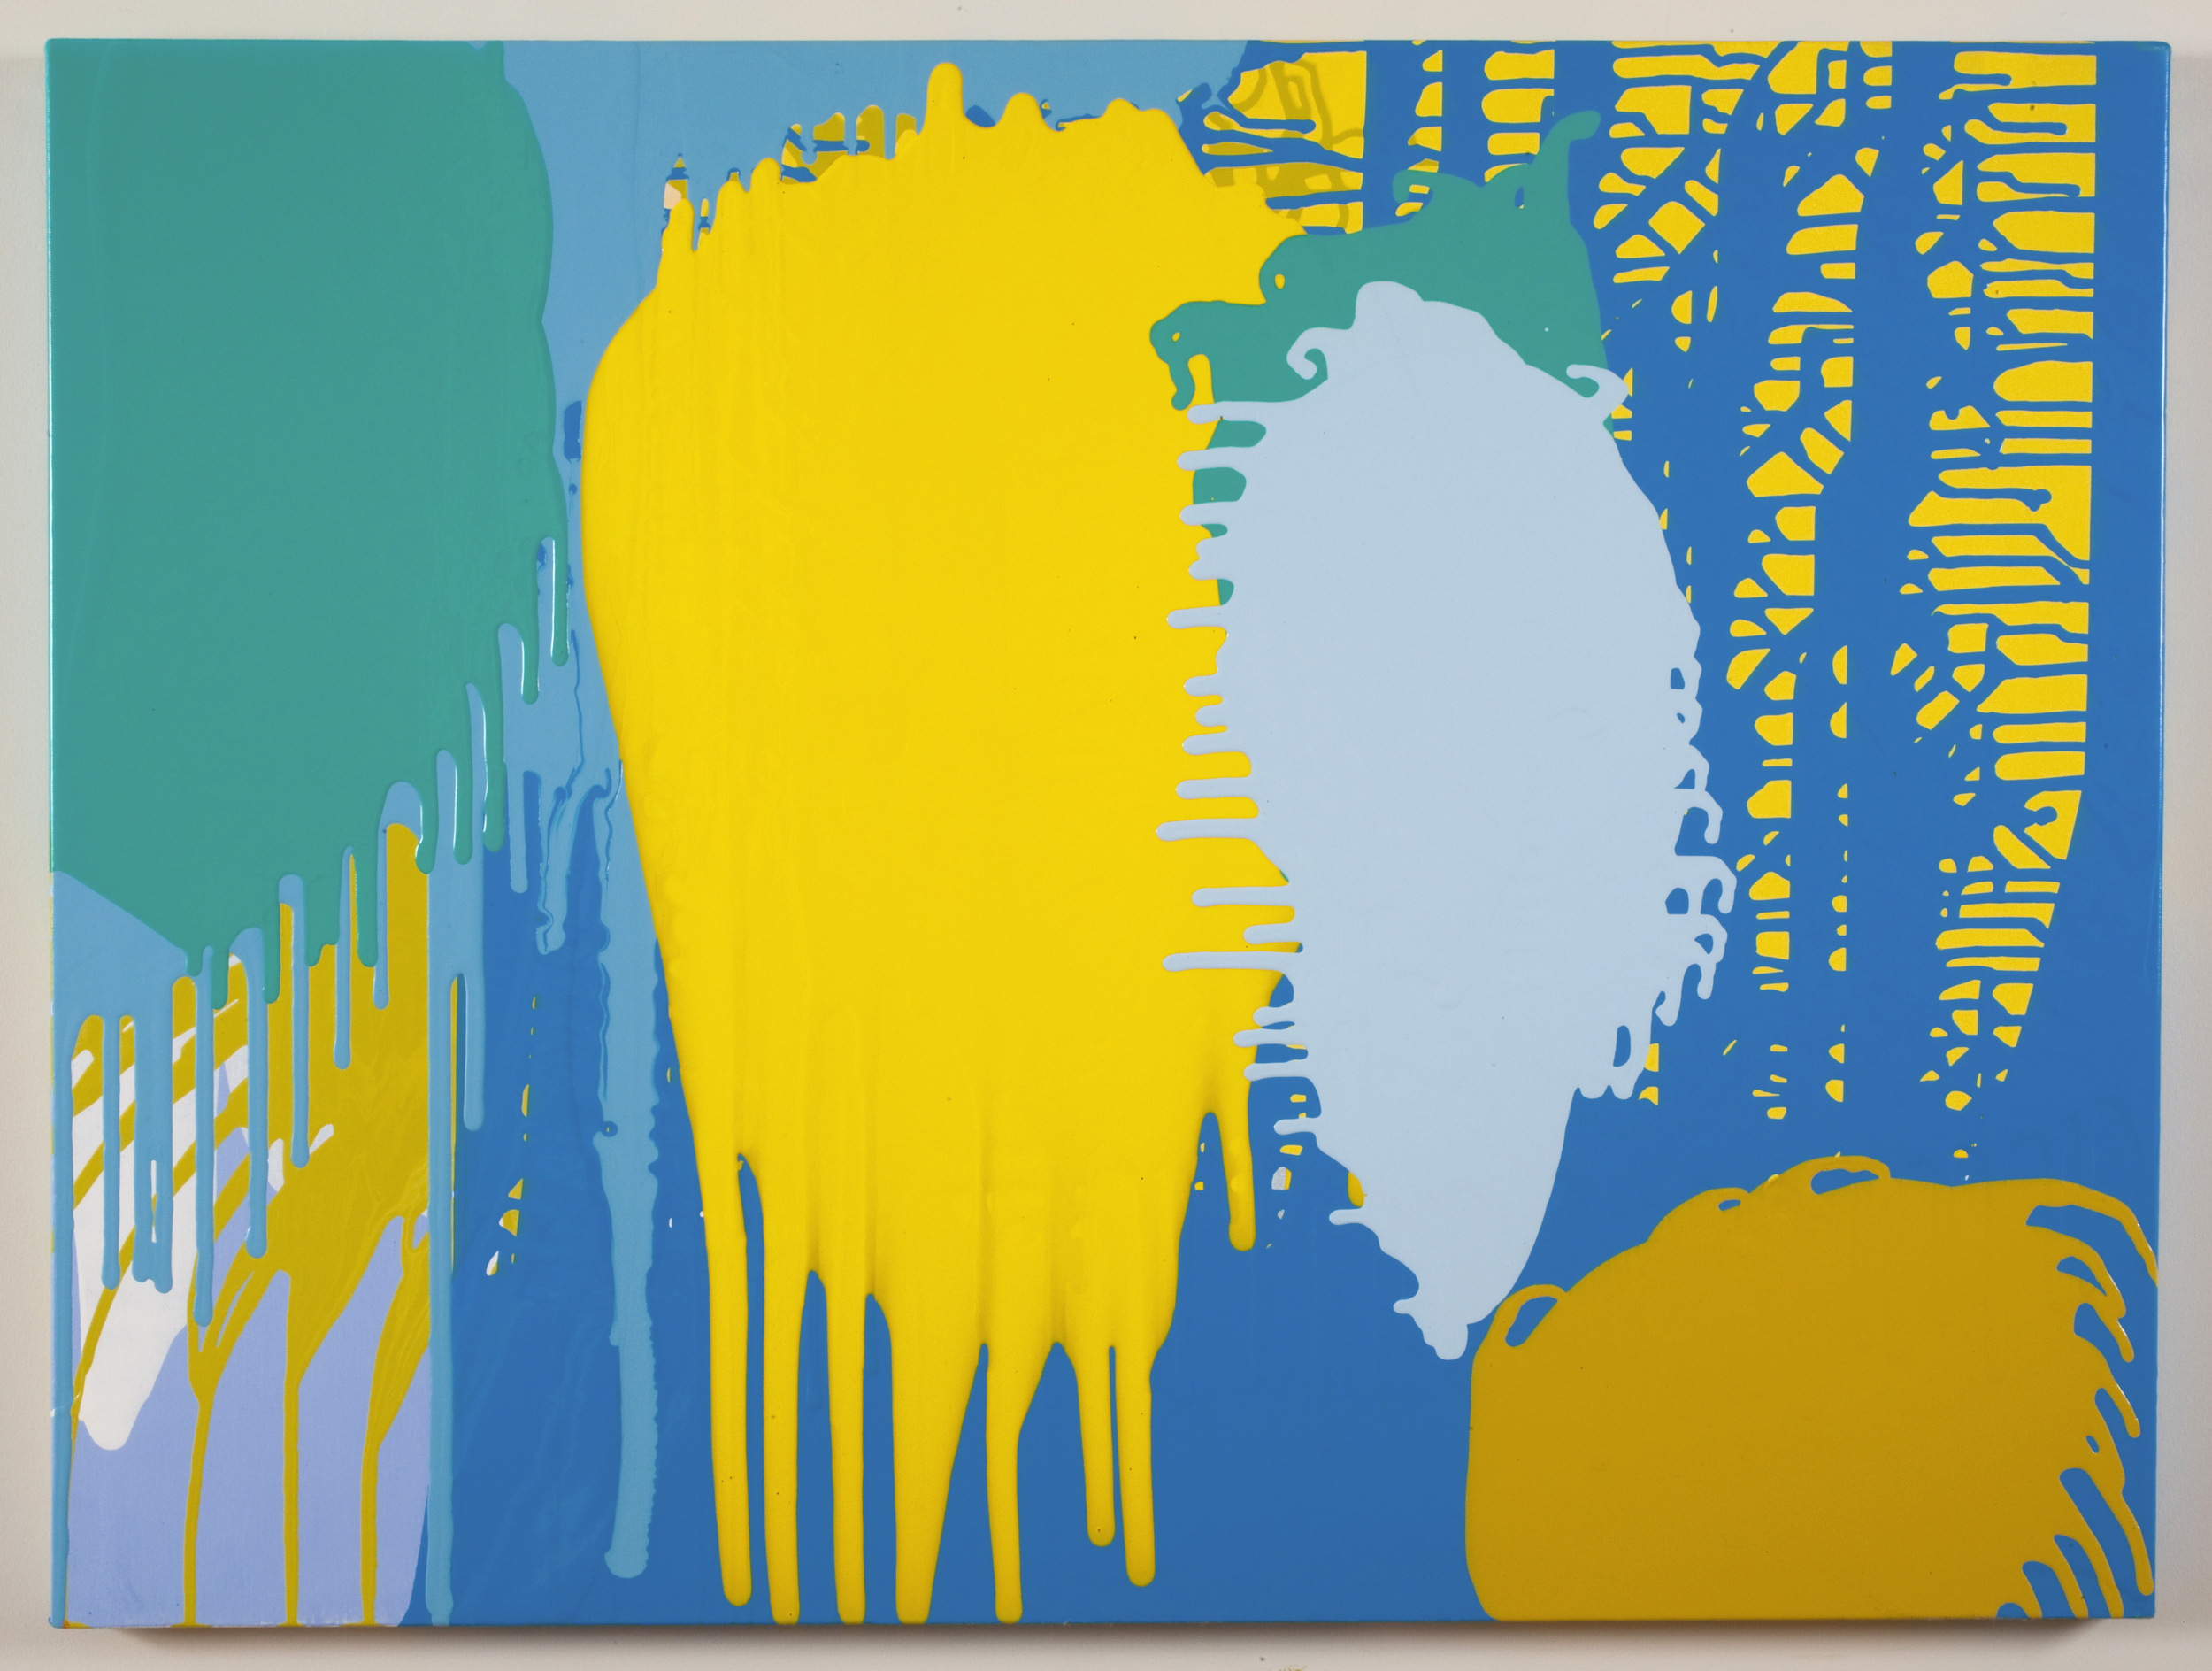 Splat, 2010 acrylic on canvas 36 inches x 40 inches